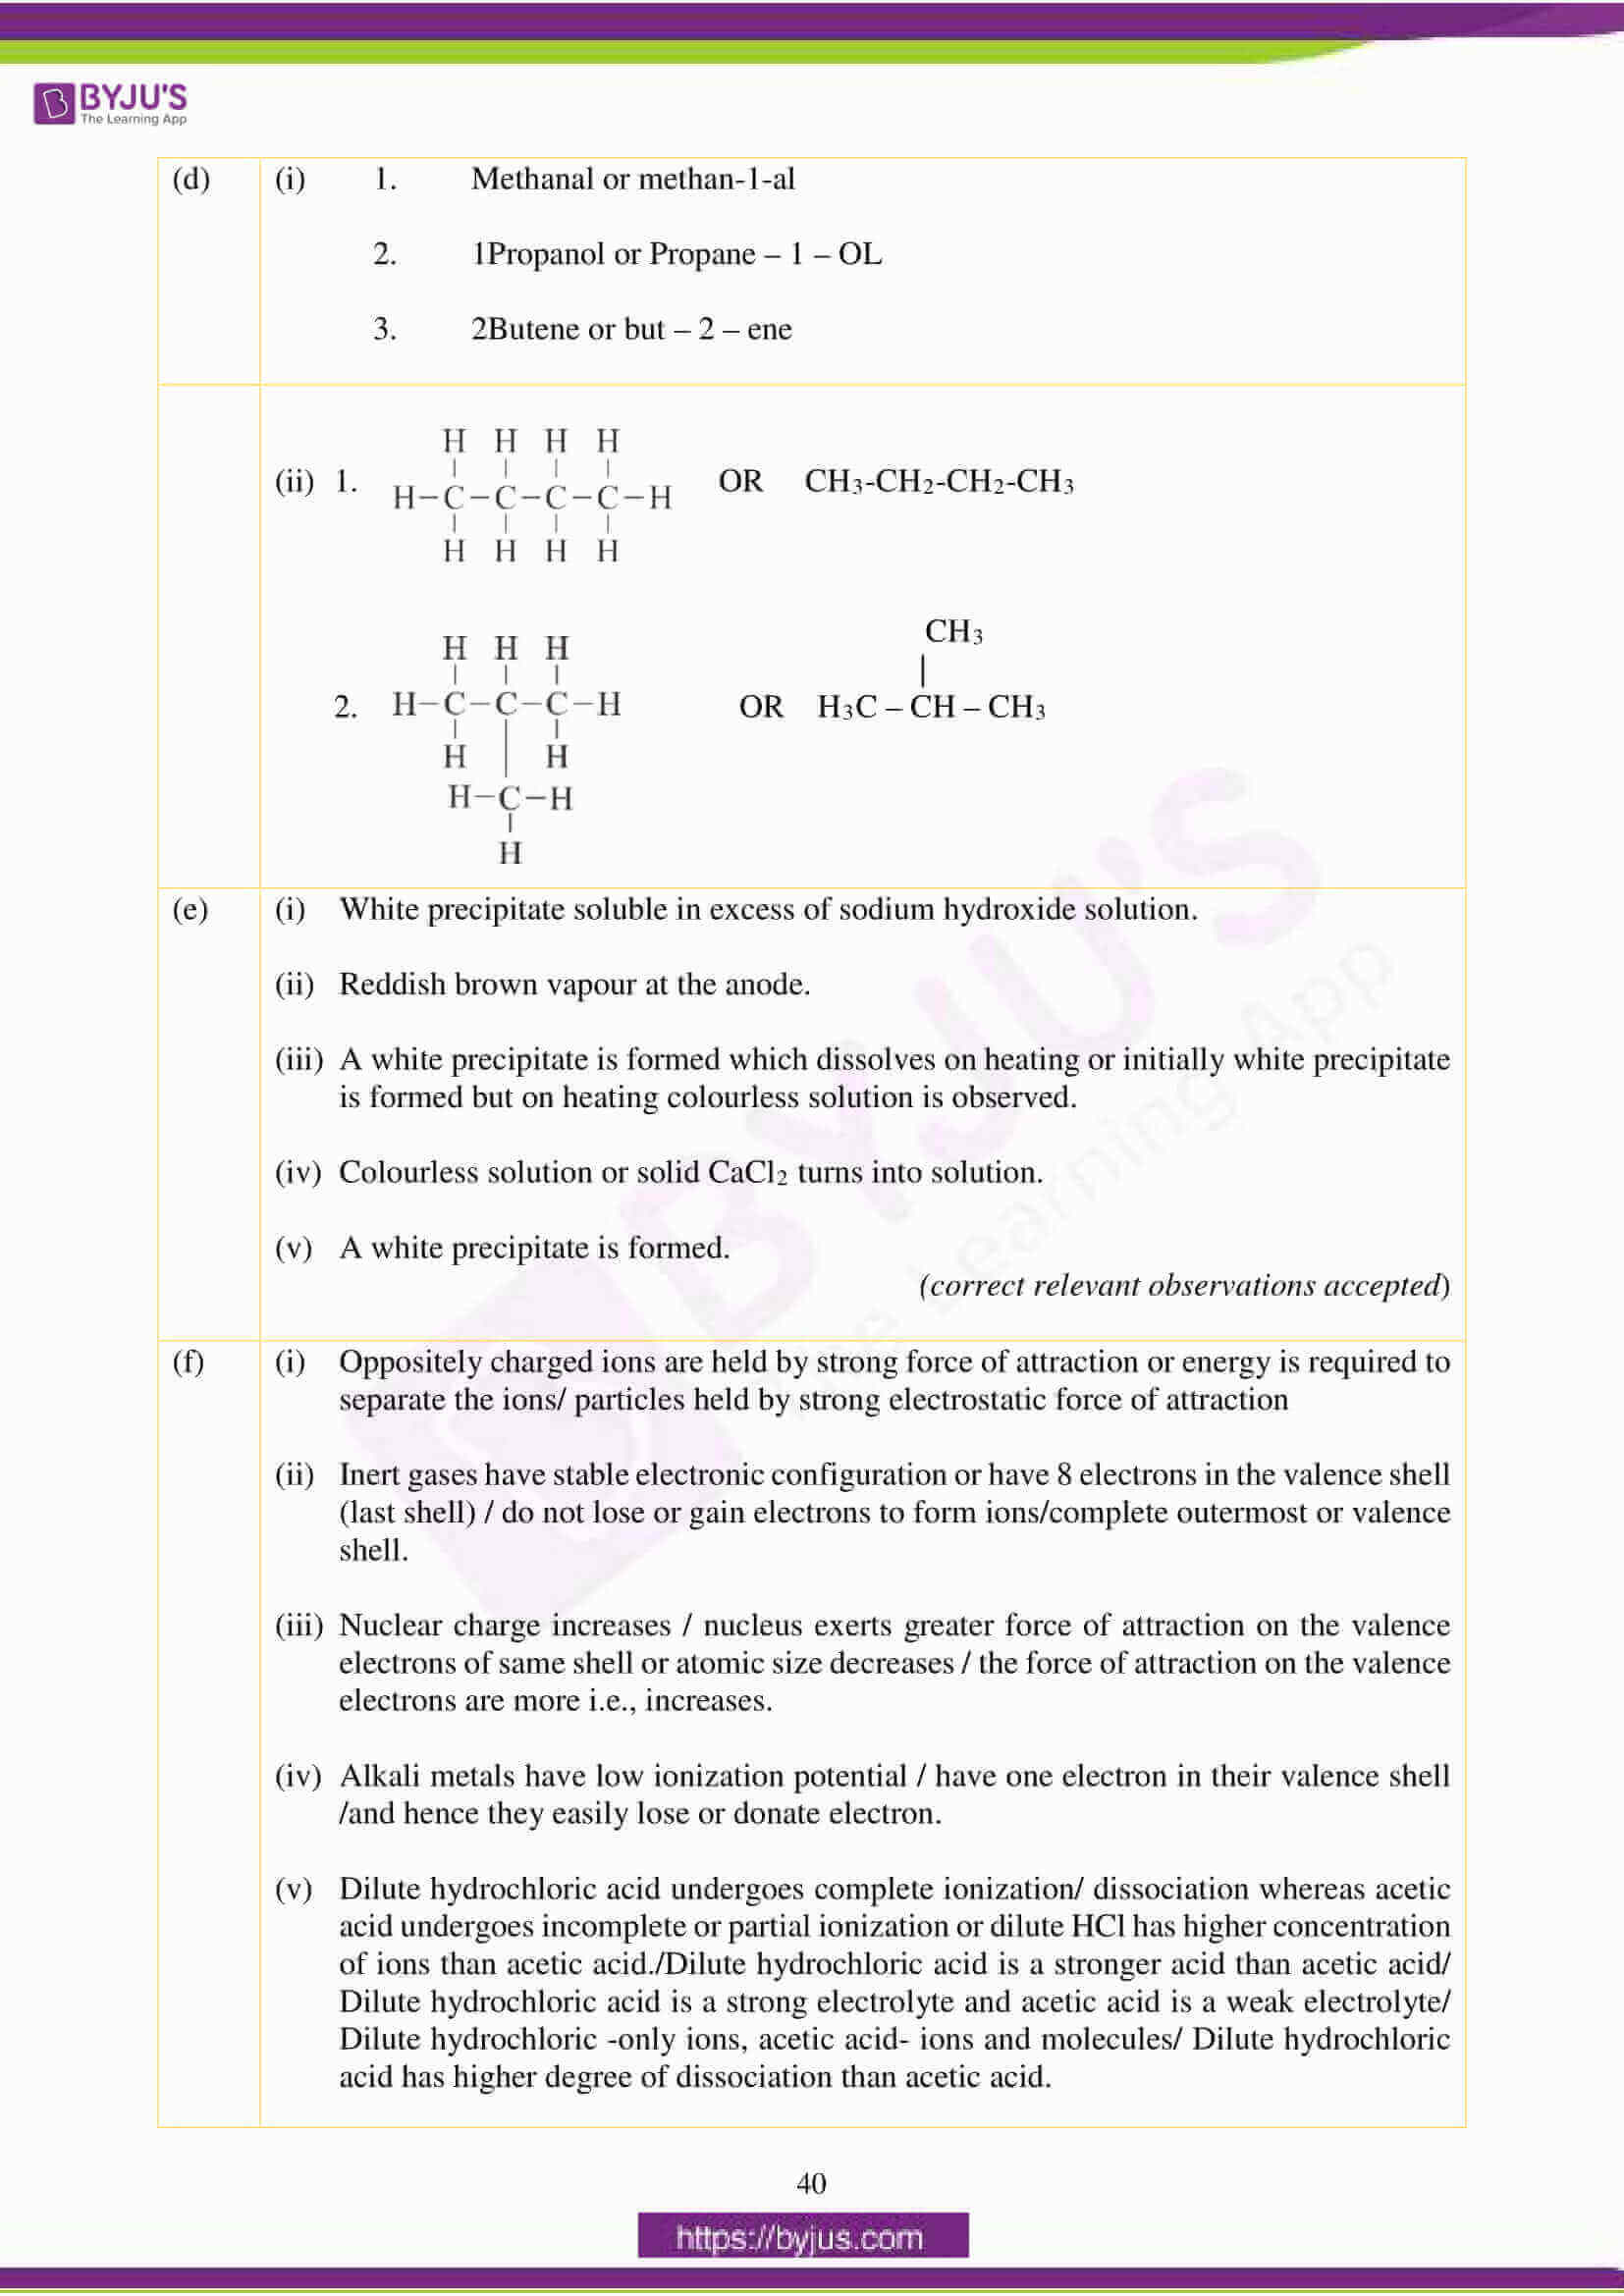 icse class 10 chemistry question paper solution 2018 07